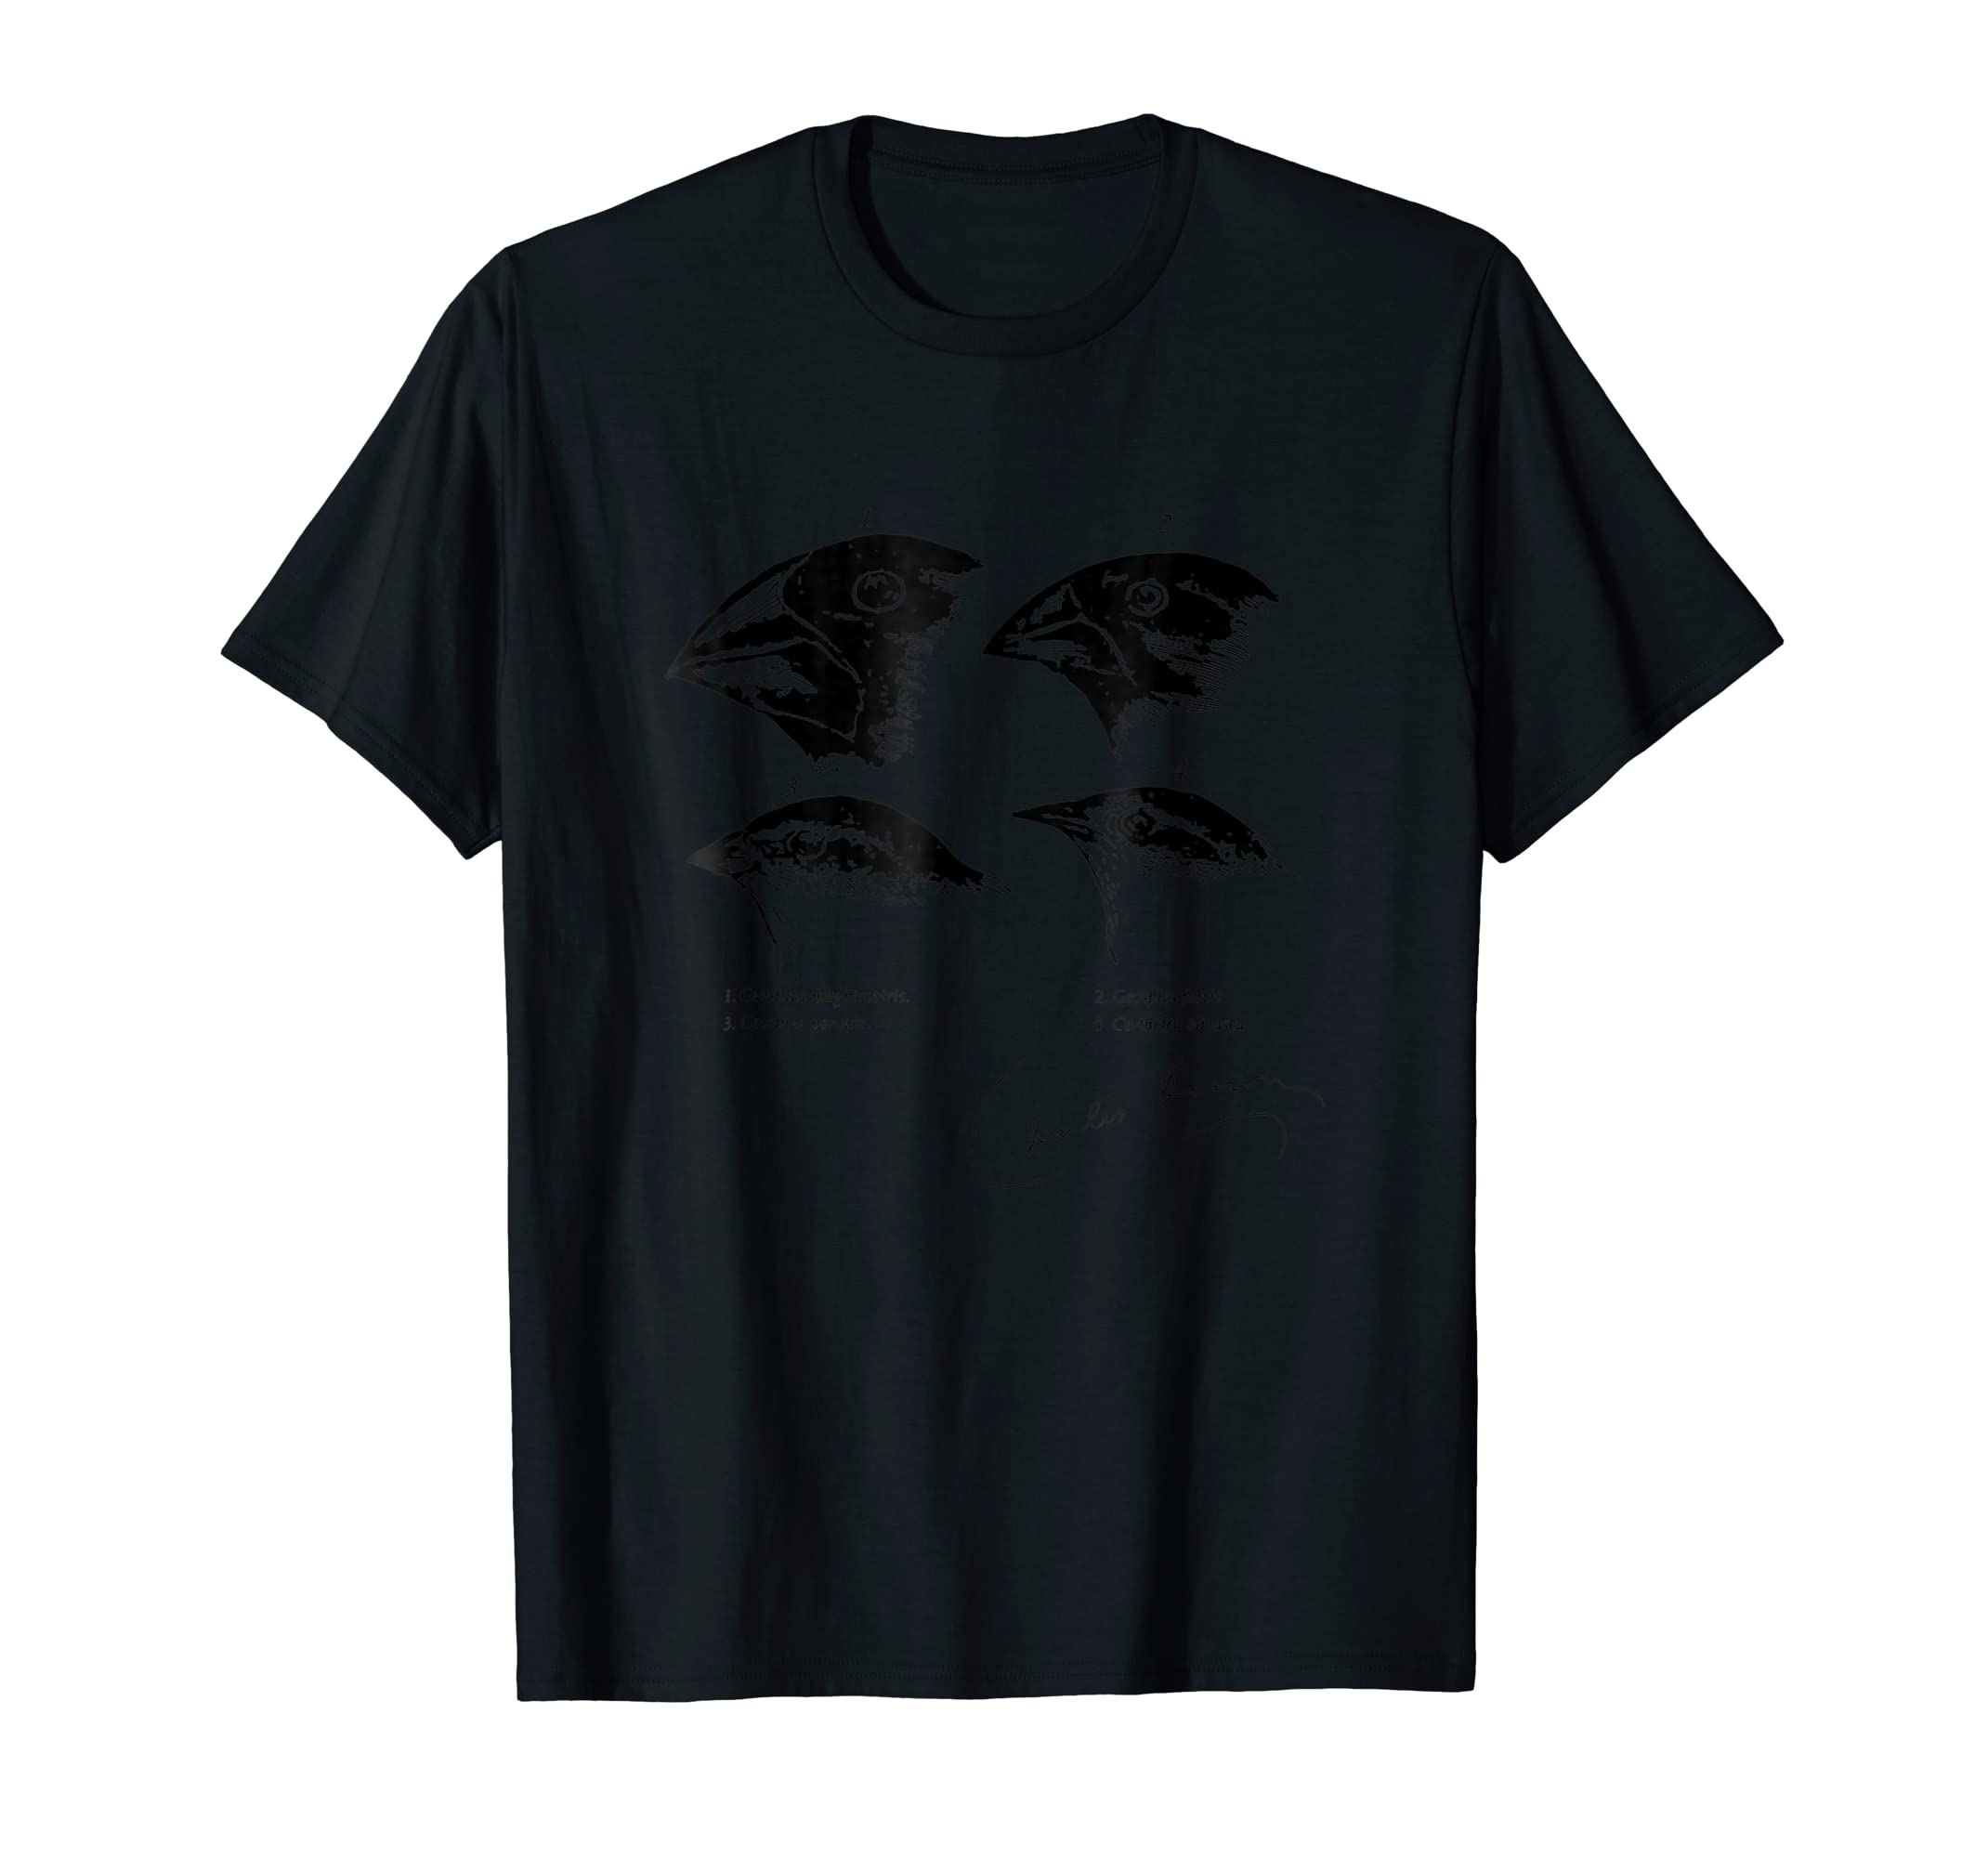 Darwin's Finches Illustration T-Shirt Evolution Atheist Tee-Men's T-Shirt-Black